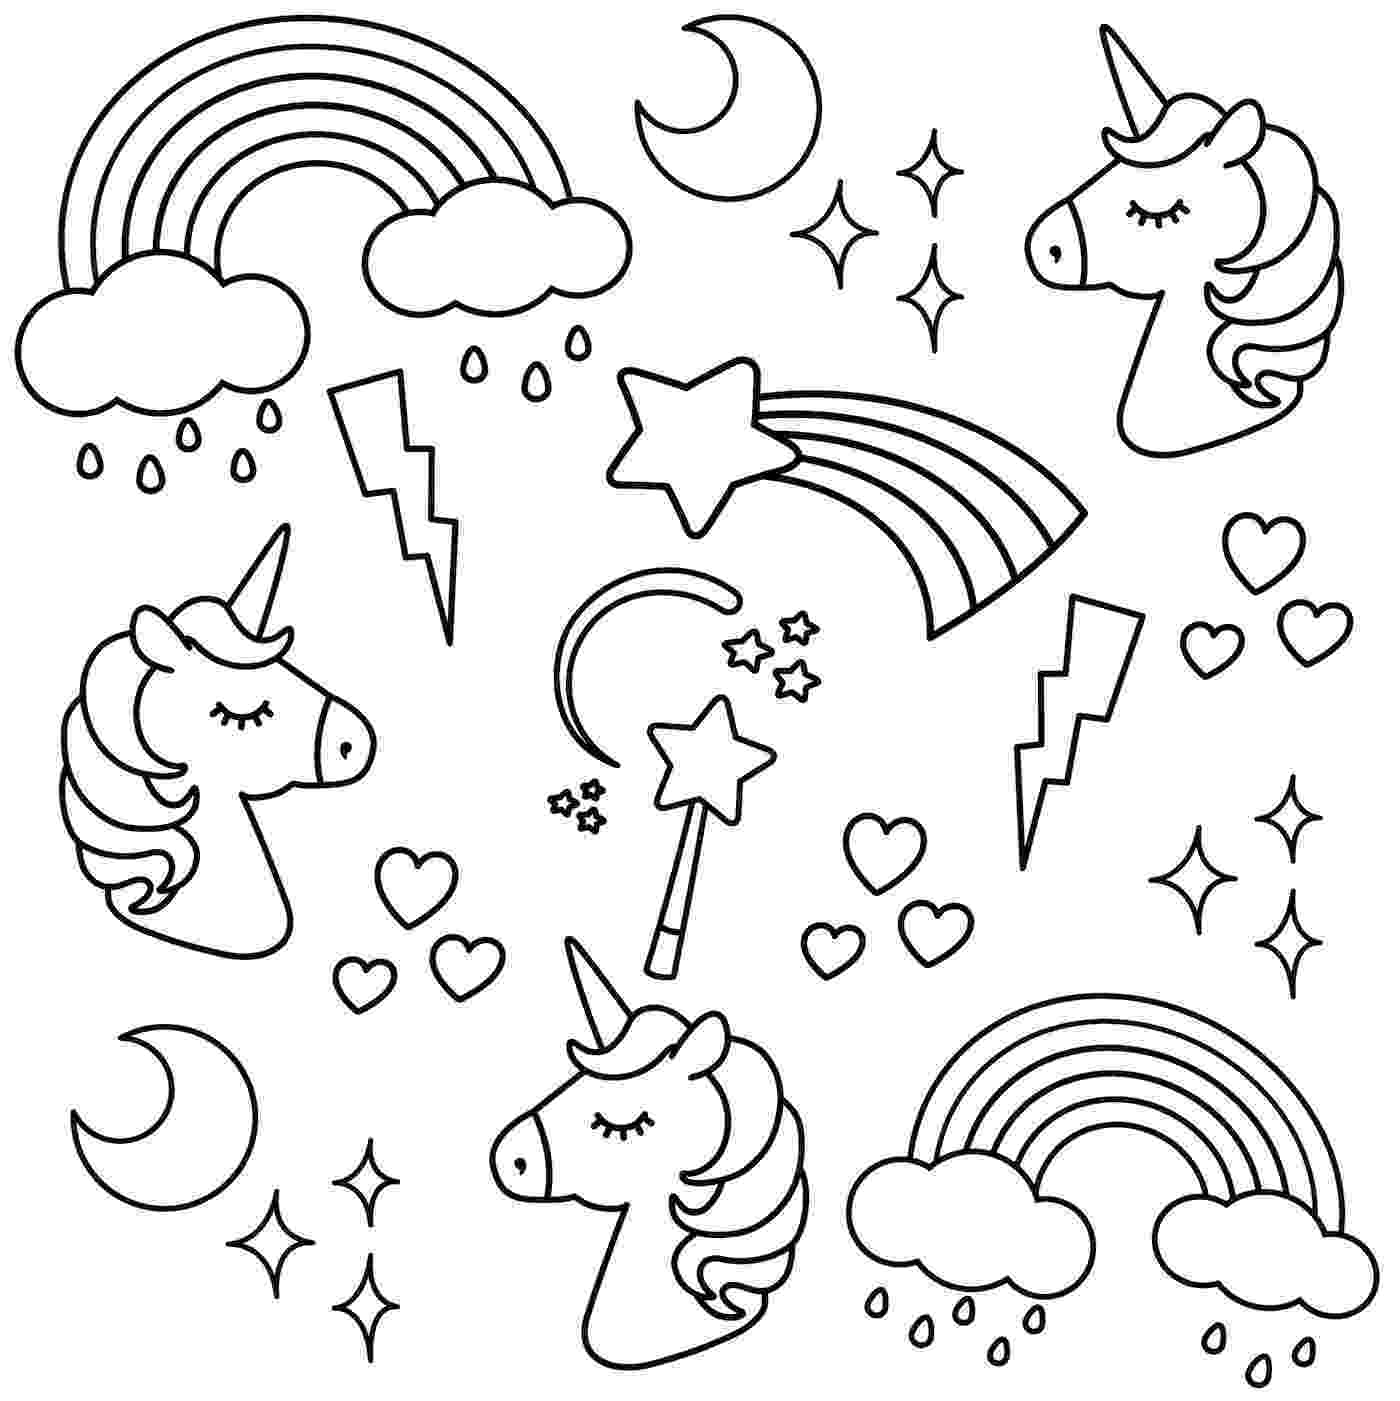 unicorn picture to color unicorn coloring pages free download on clipartmag picture unicorn to color